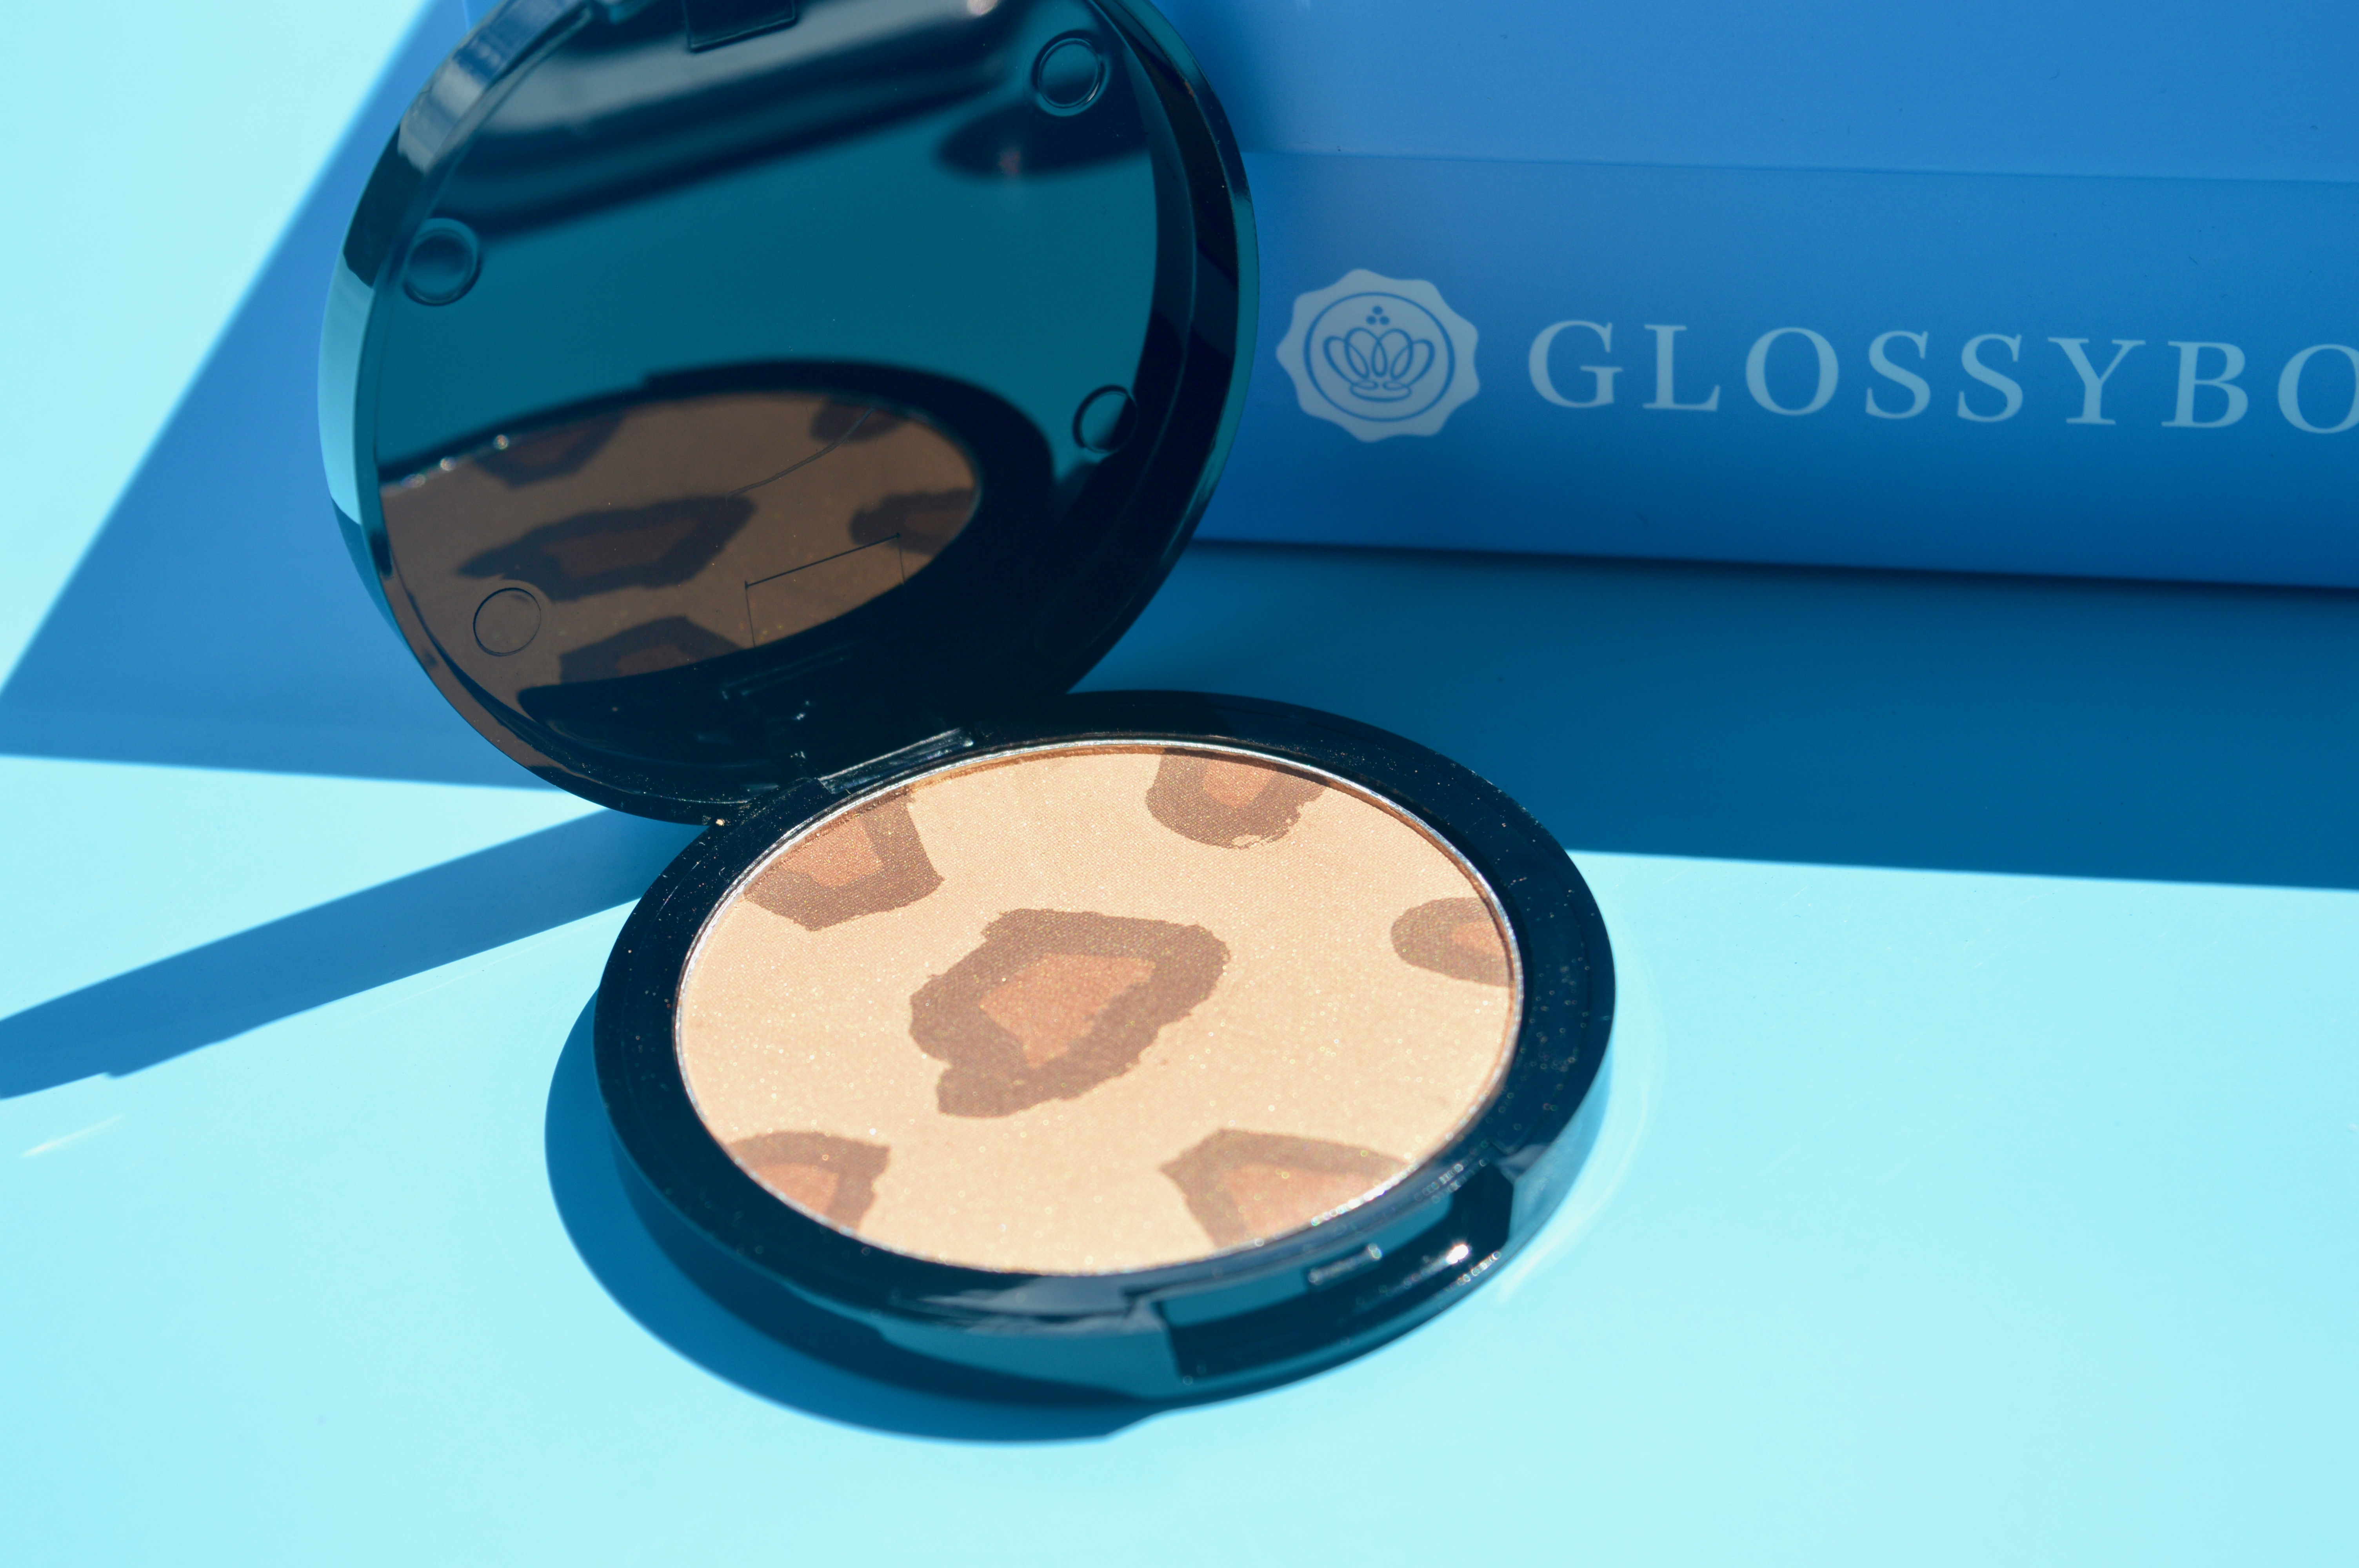 Safari-Bronzer-Subscription-Boxes-August-Collectors-Glossybox-Elle-Blonde-Luxury-Lifestyle-Destination